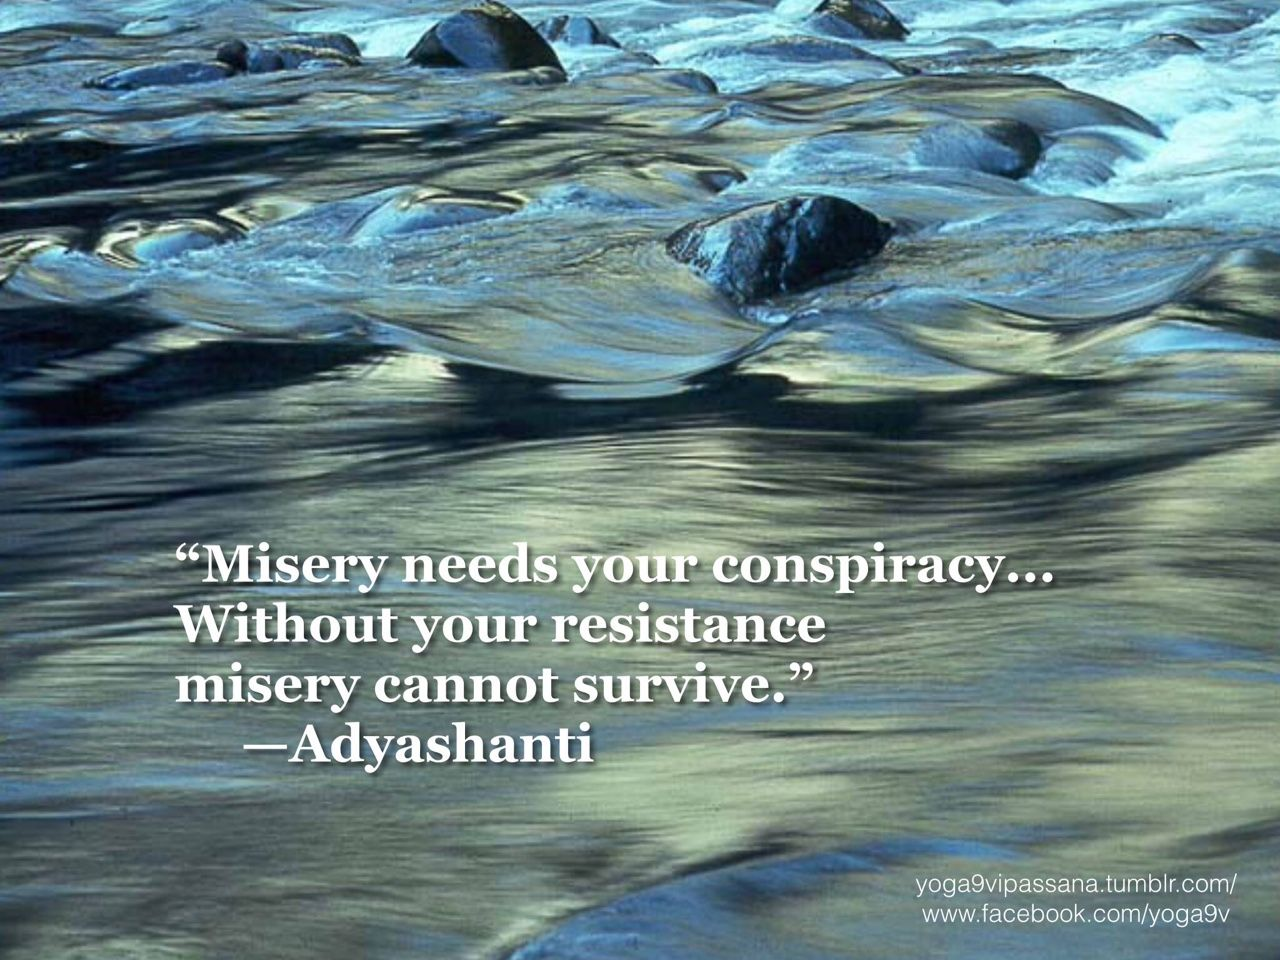 Adyashanti Quotes Wisdom Quotes Misery Needs Your Conspiracywithout Your